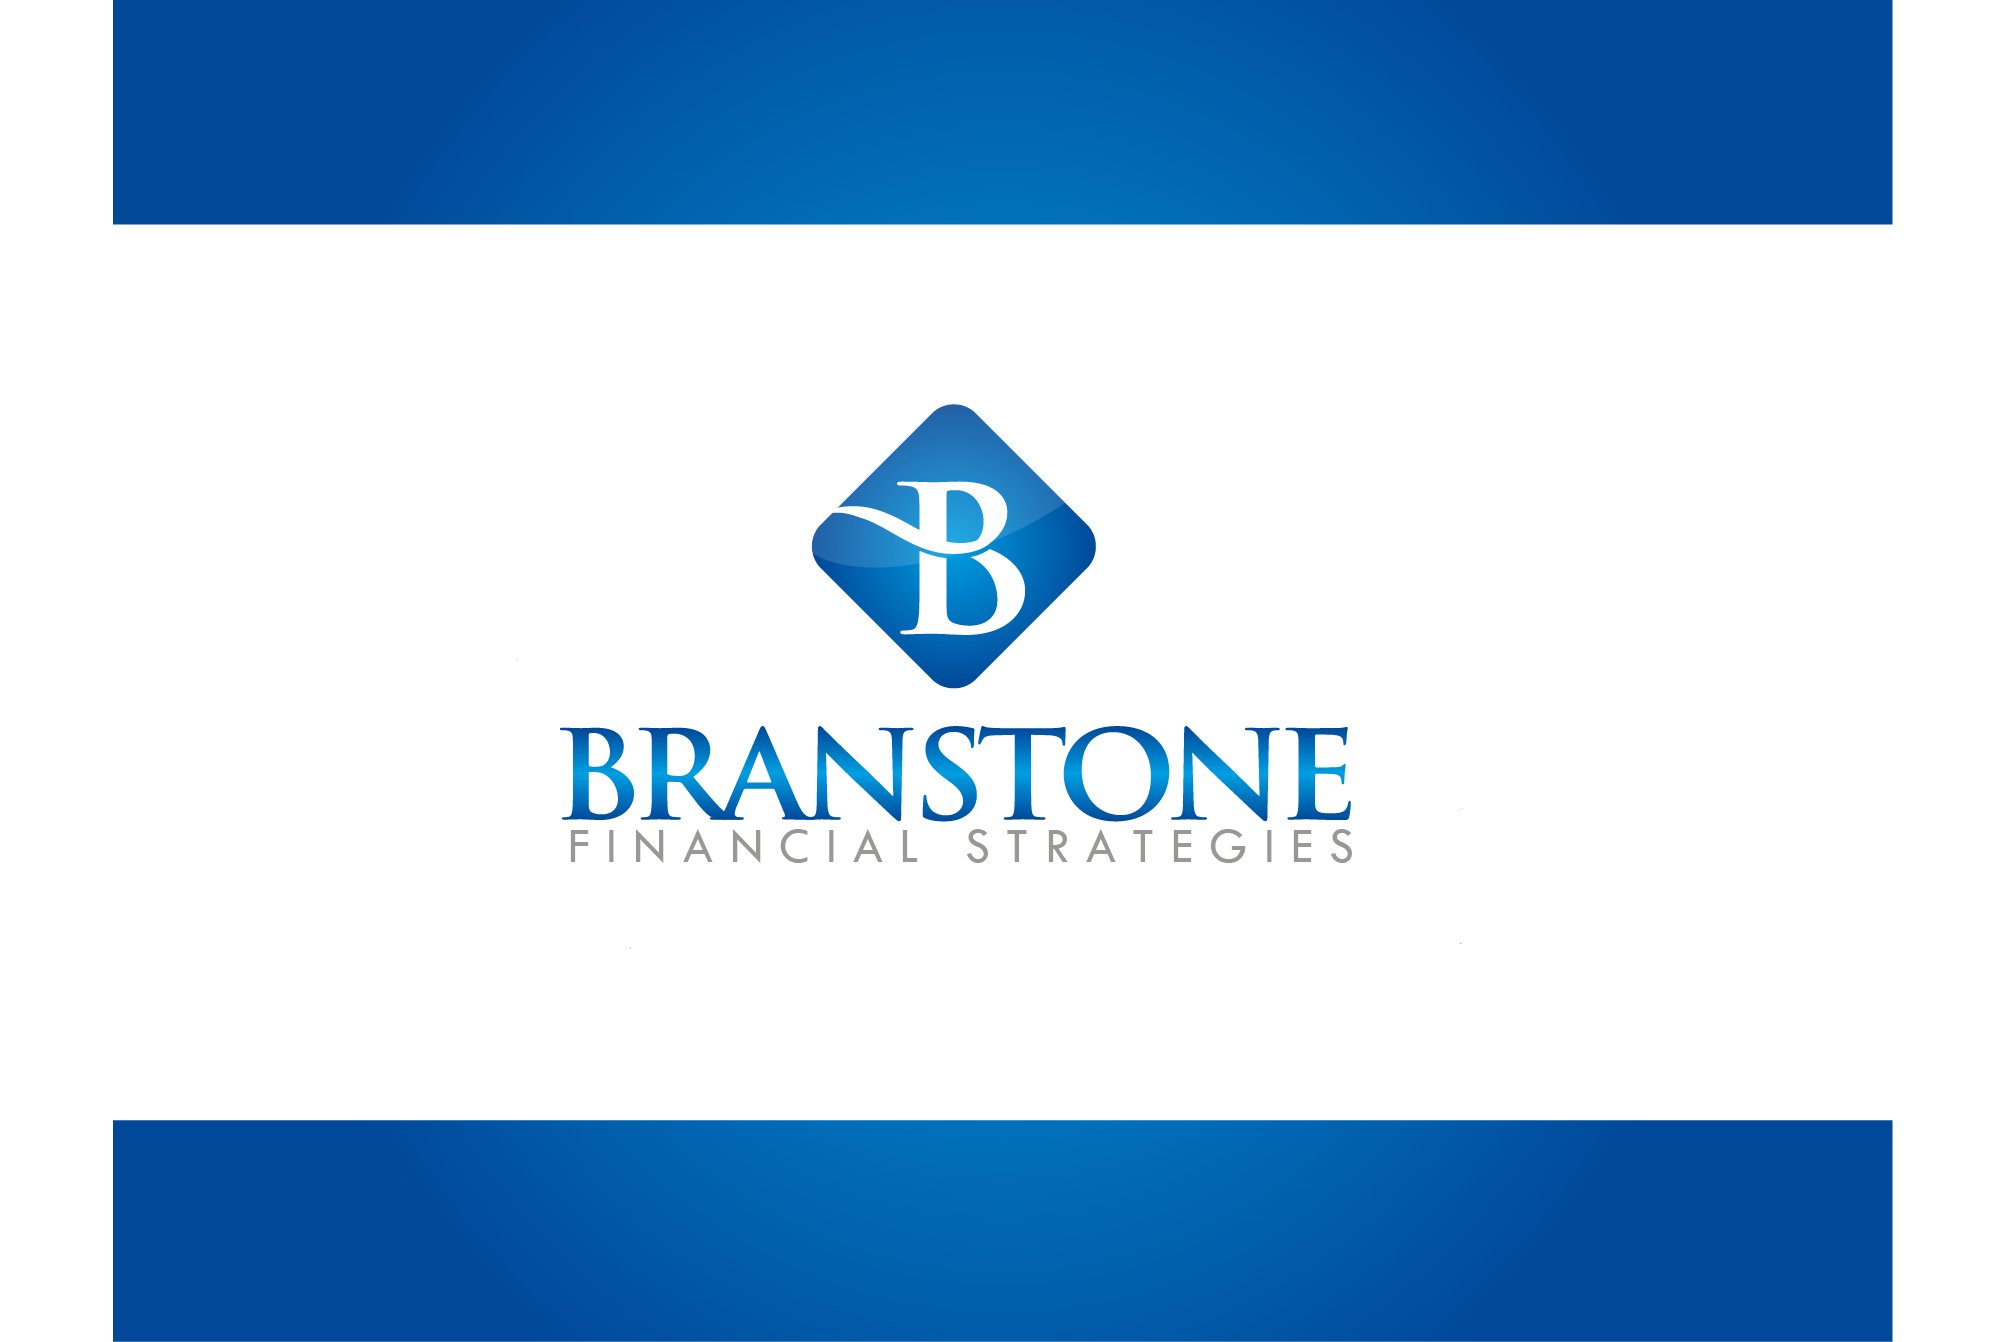 Logo Design by Ryan Hortizuela - Entry No. 337 in the Logo Design Contest Inspiring Logo Design for Branstone Financial Strategies.